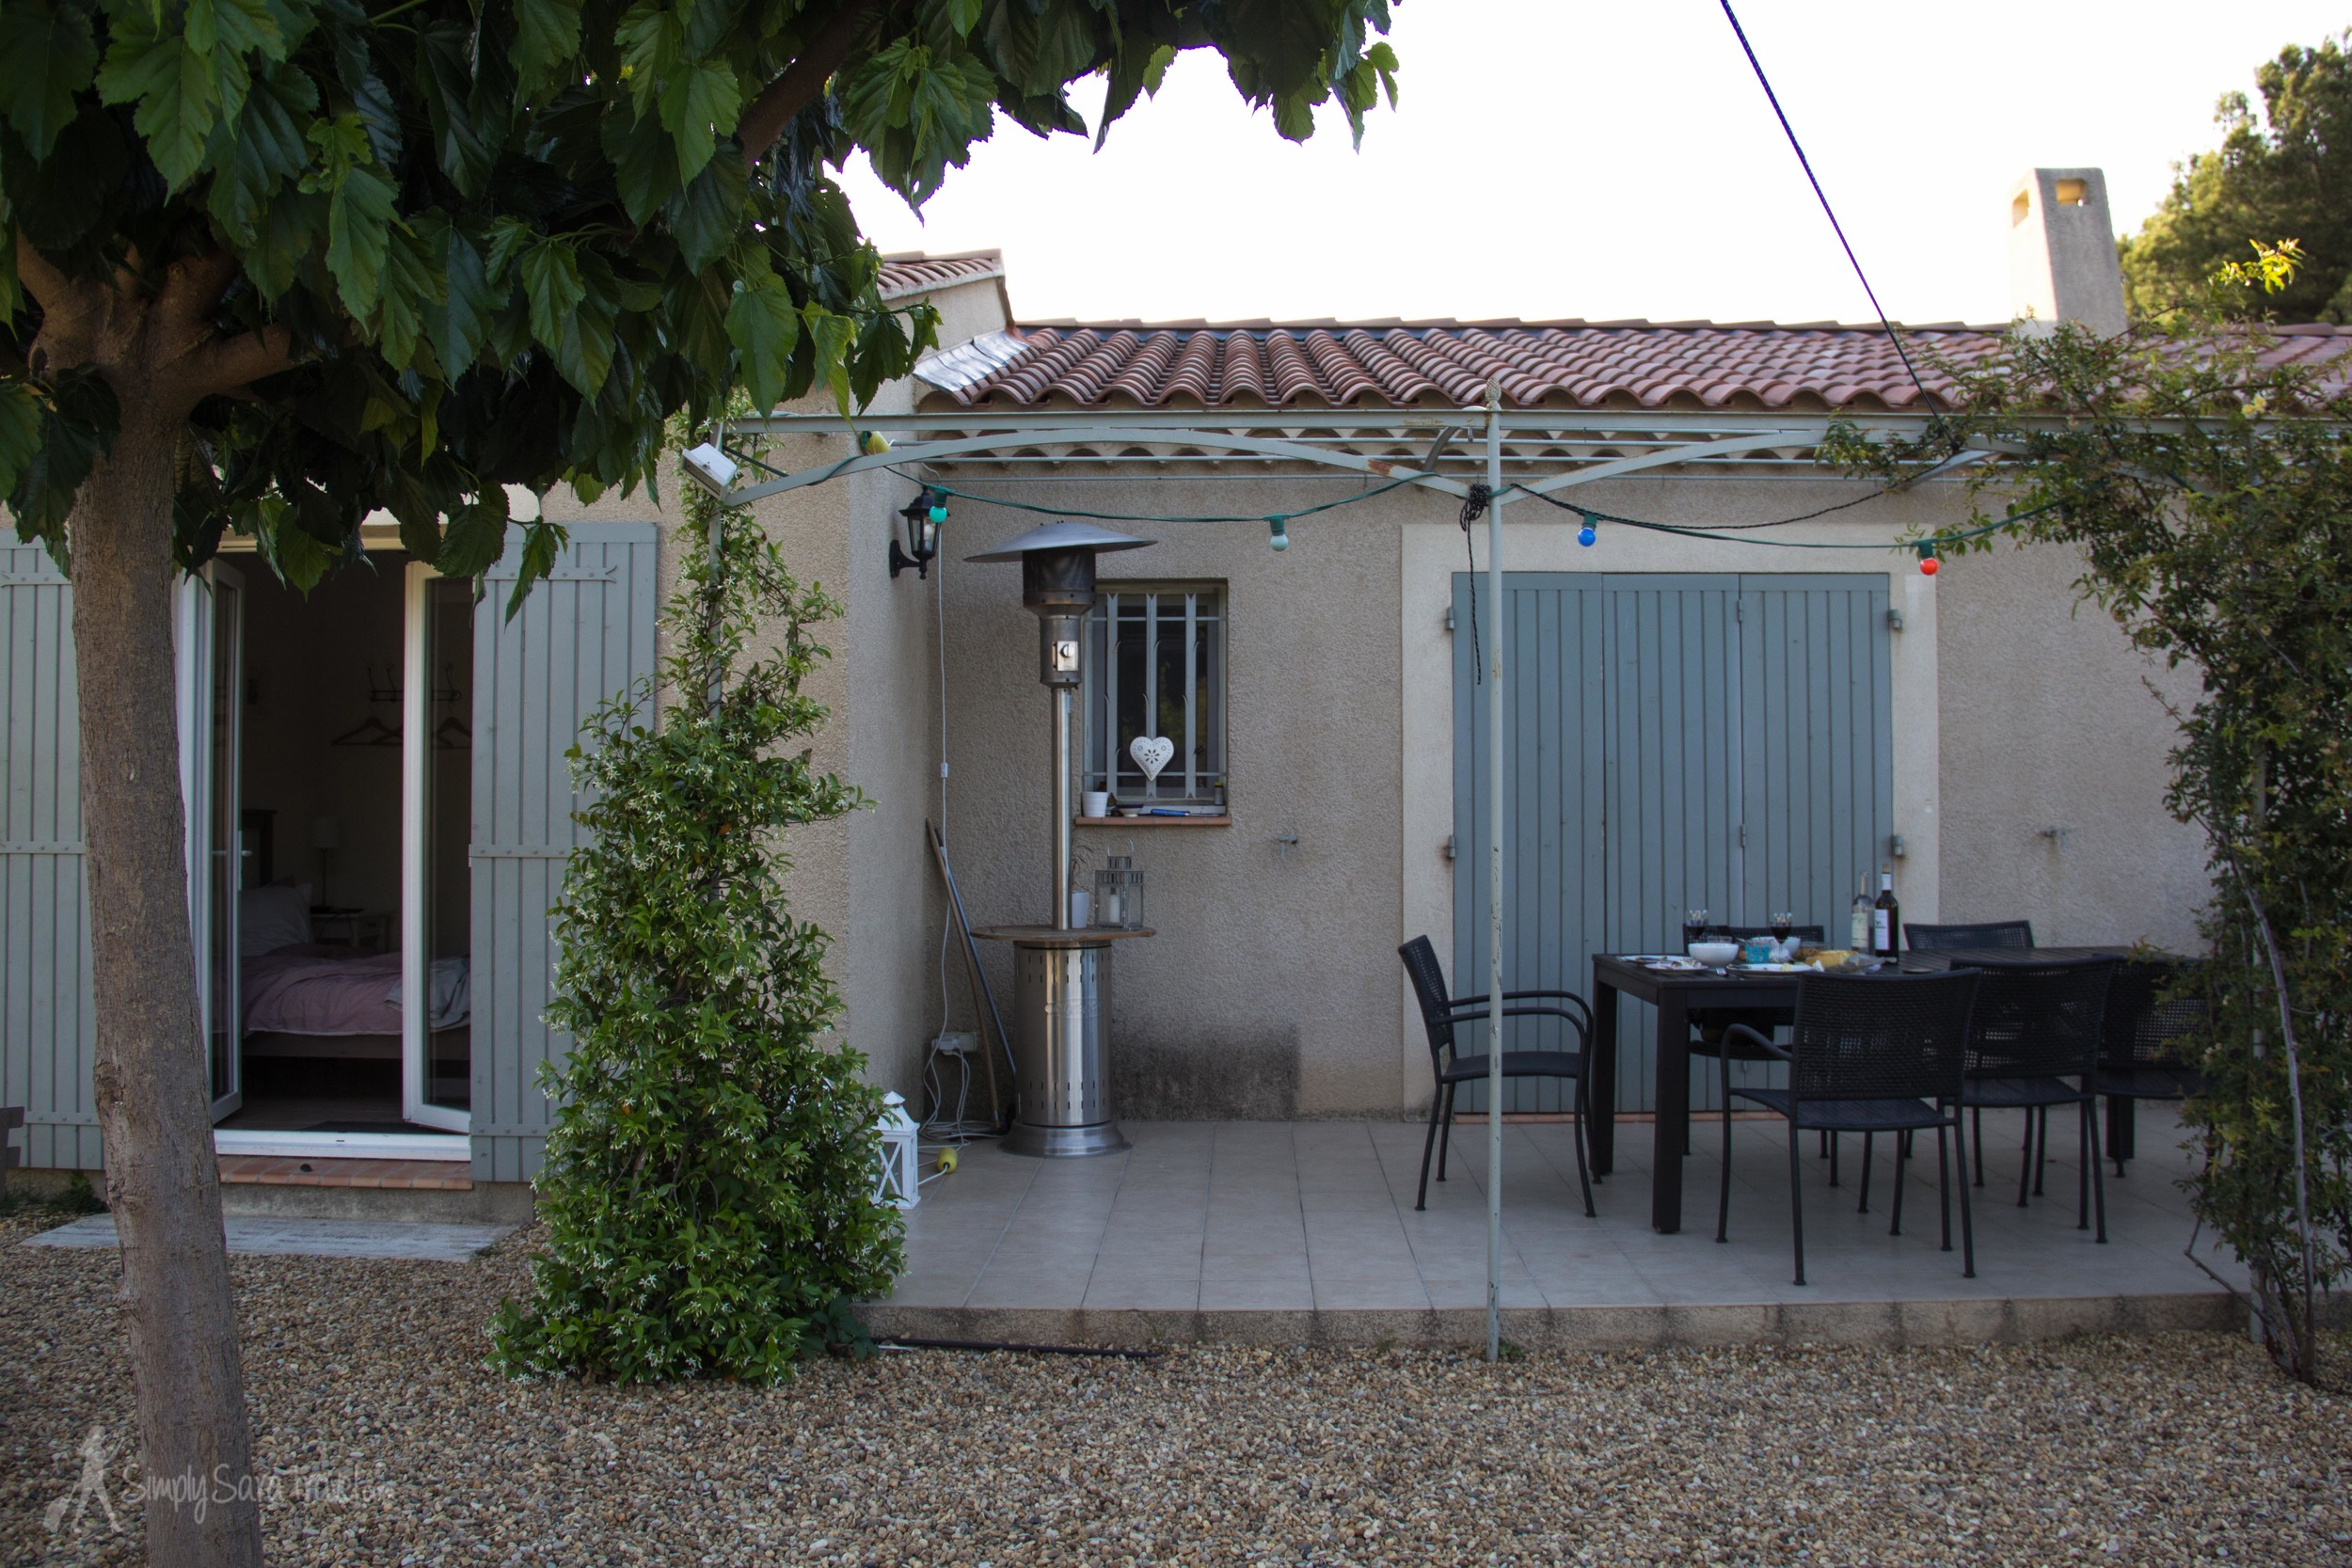 The backyard of our Airbnb in Saint-Rémy-de-Provence, with the entrance to our room through the doors on the left